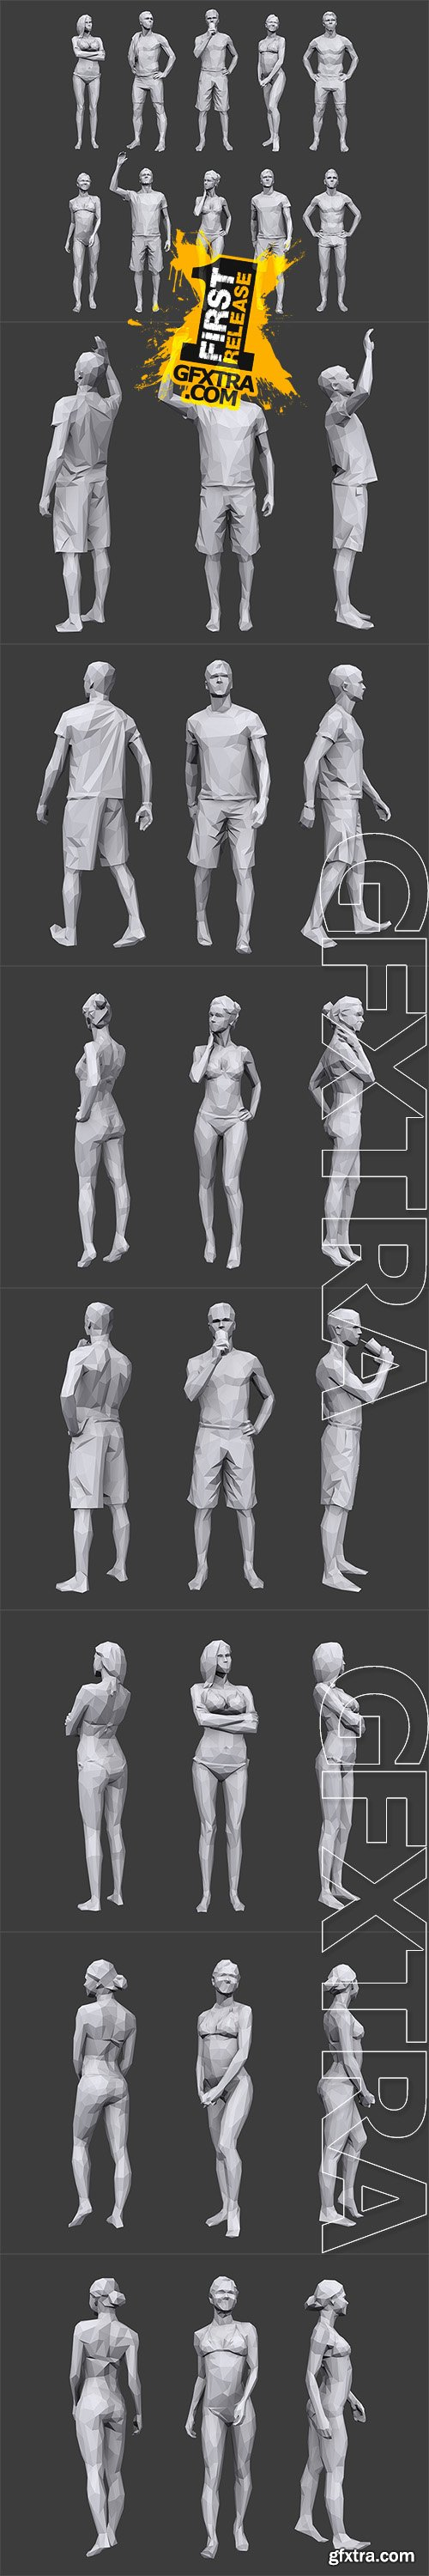 Cubebrush - Lowpoly People Vacation Pack